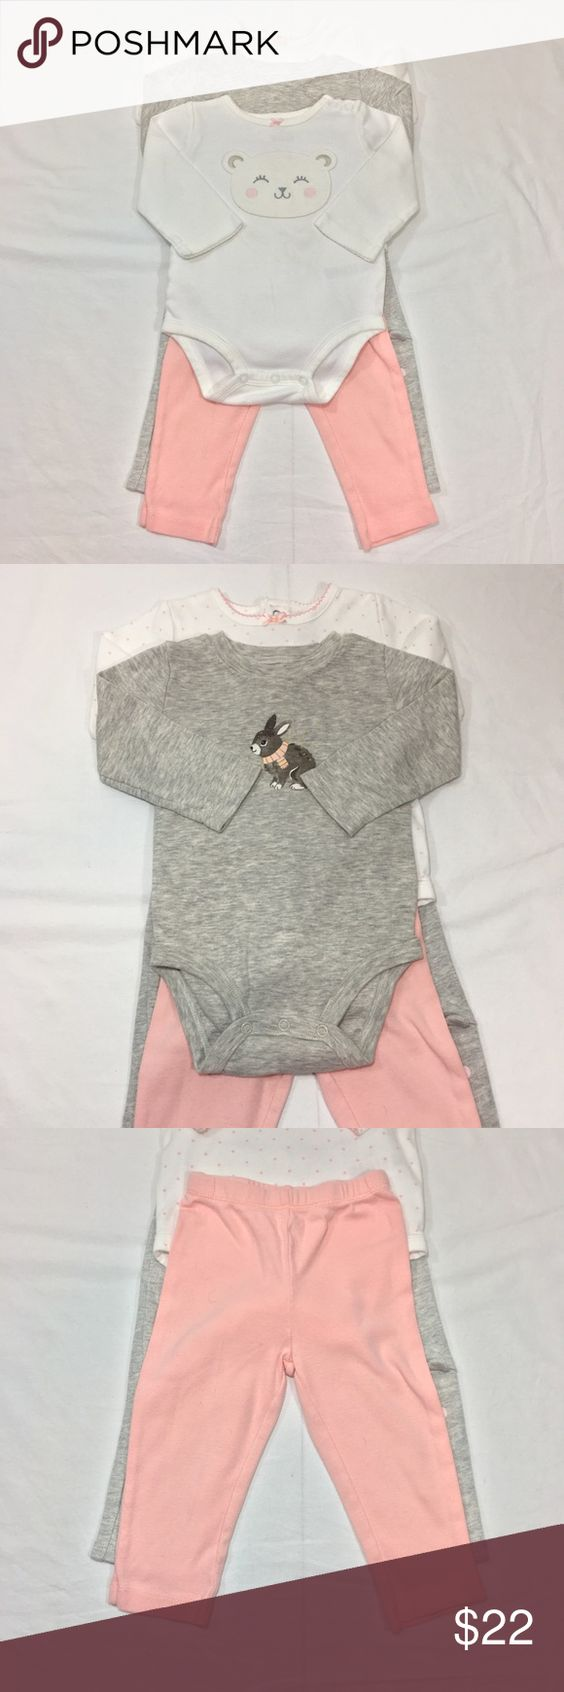 CARTER'S 5PC. ONESIE & PANT SET BUNDLE CARTER'S 5PC. ONESIE & PANT SET BUNDLE. THREE ONESIES, 2 PAIRS OF PANTS. FABRIC: COTTON. CONDITION: GENTLY USED/ SIGNS OF WEAR; MINOR PILLING. SIZE 12M Carter's Matching Sets